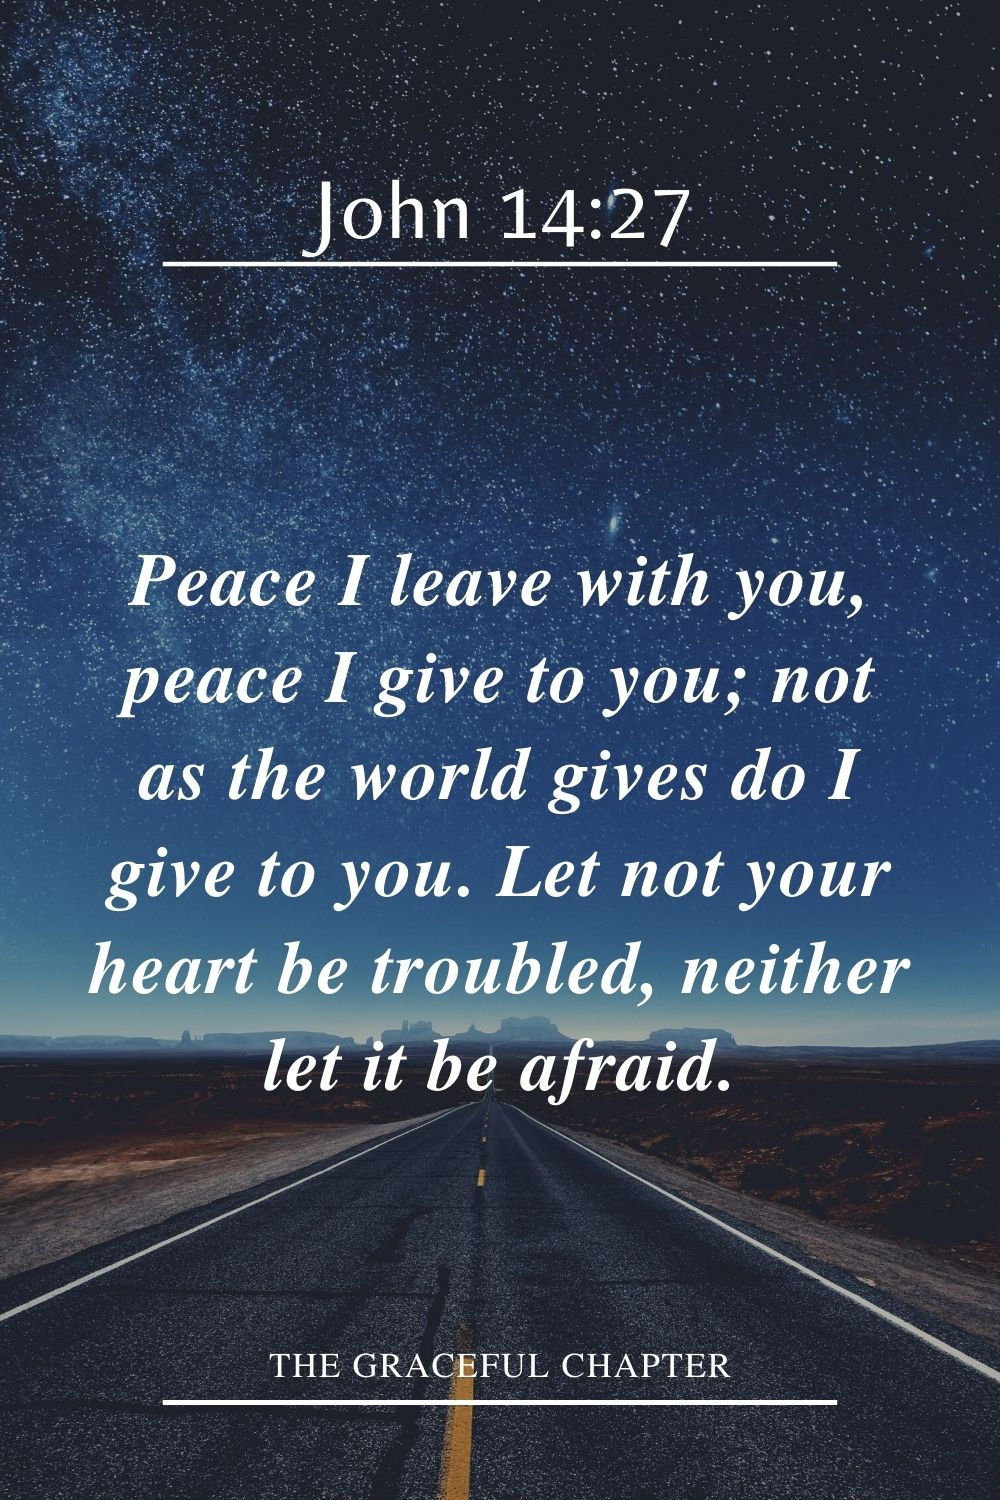 Peace I leave with you, peace I give to you; not as the world gives do I give to you. Let not your heart be troubled, neither let it be afraid. John 14:27